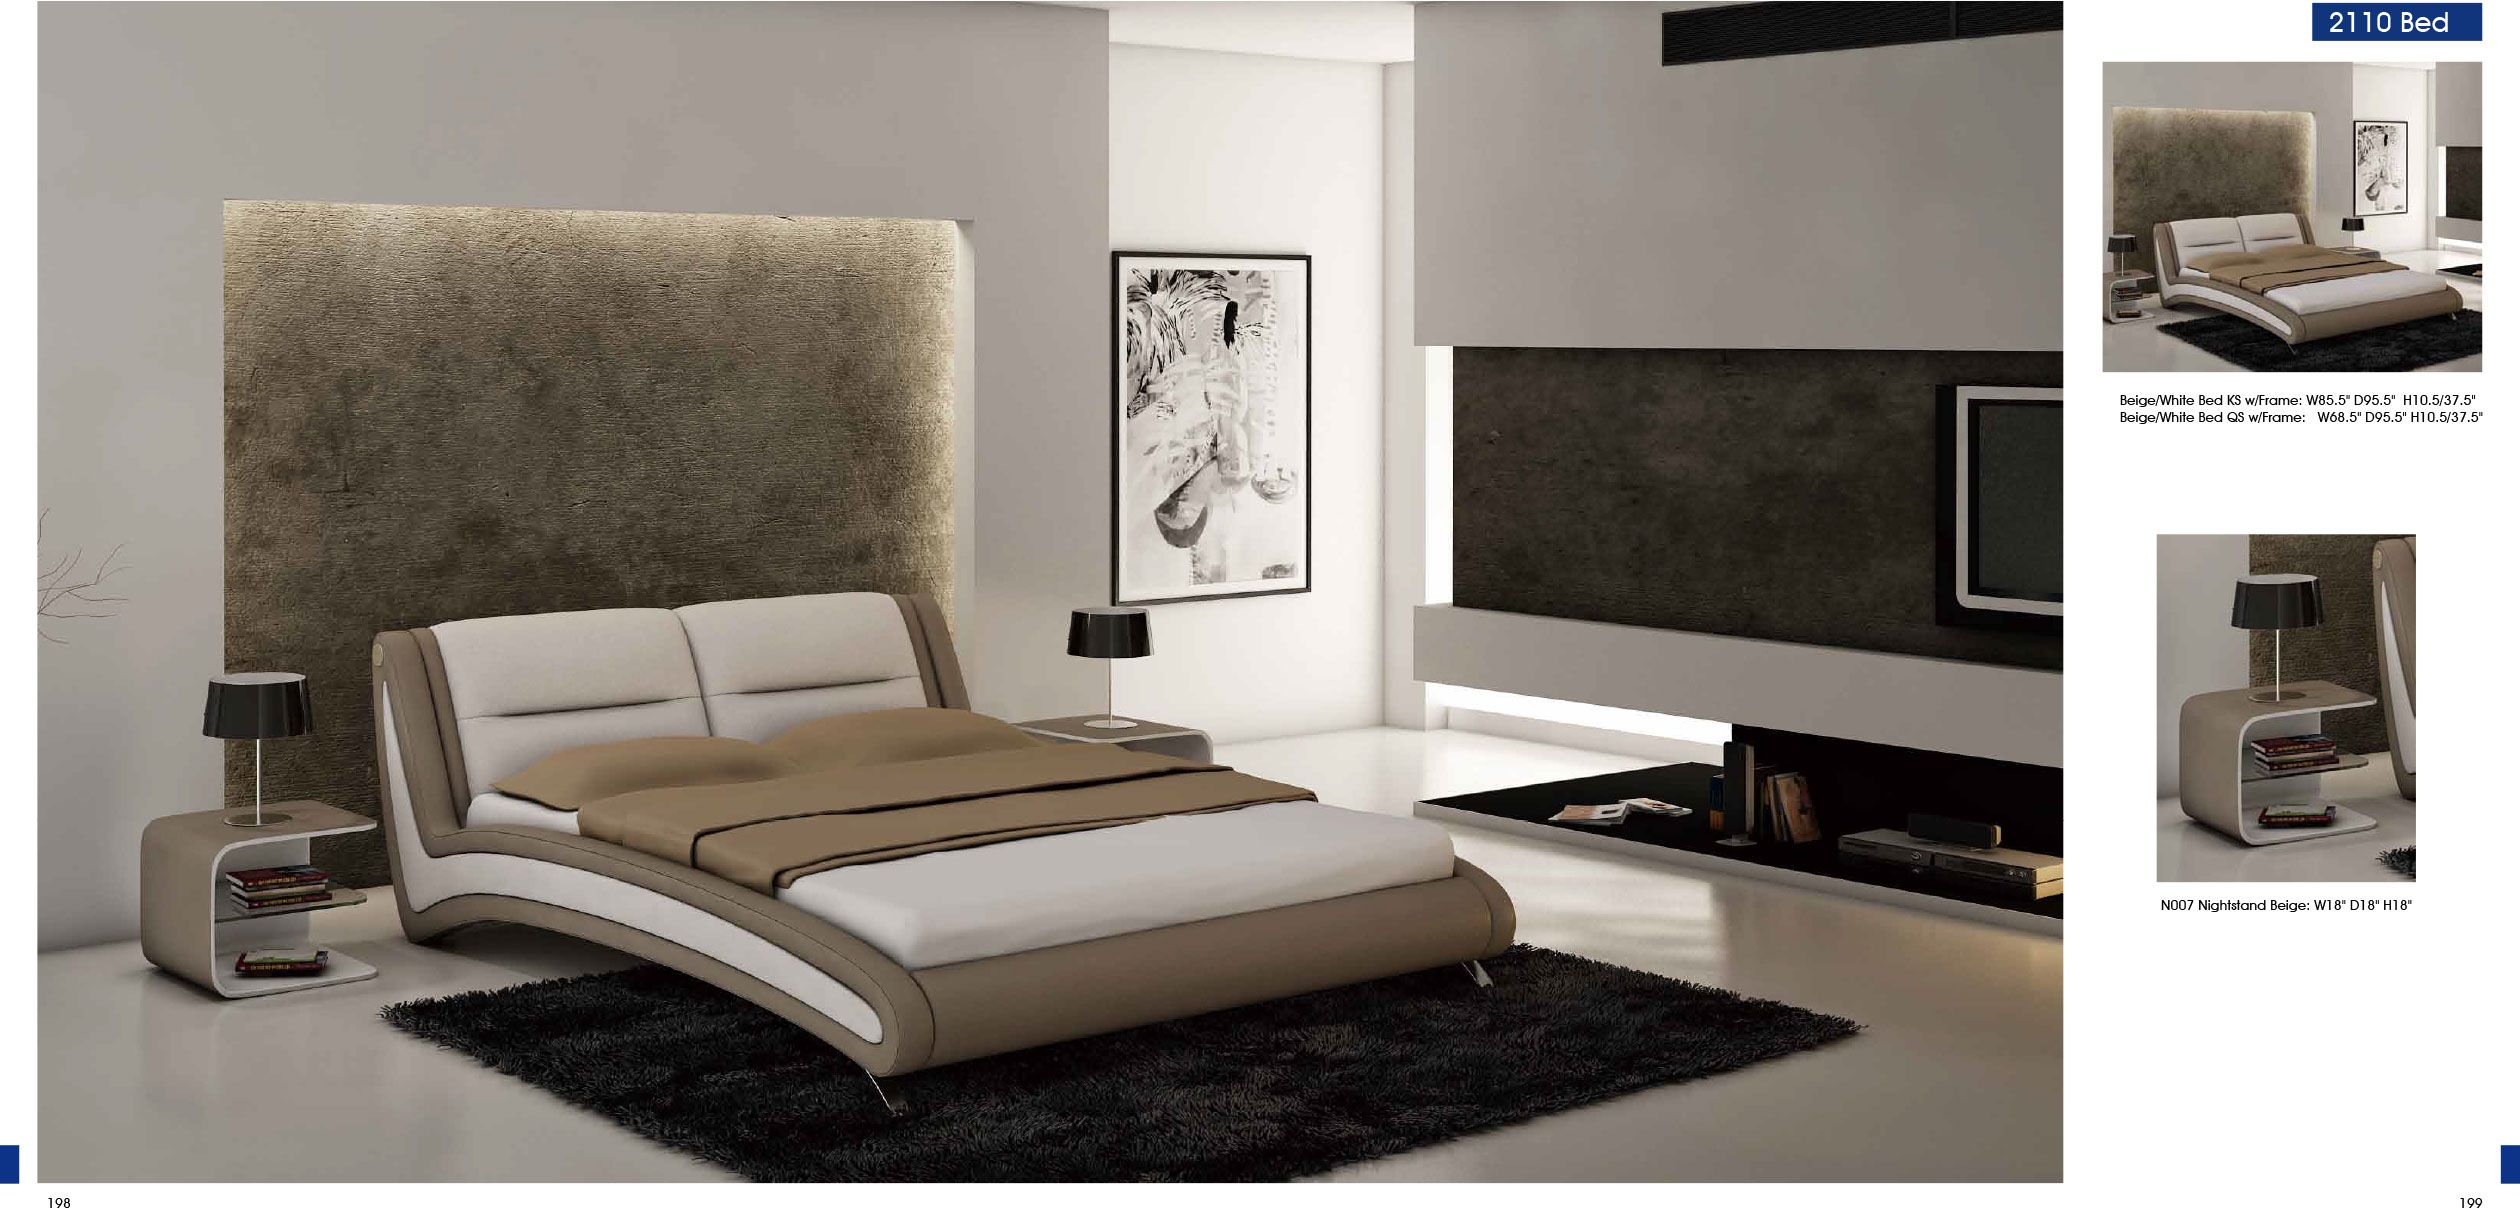 Bedroom Furniture Bedroom Furniture Modern Bedrooms 2110 Beige White Bed N007